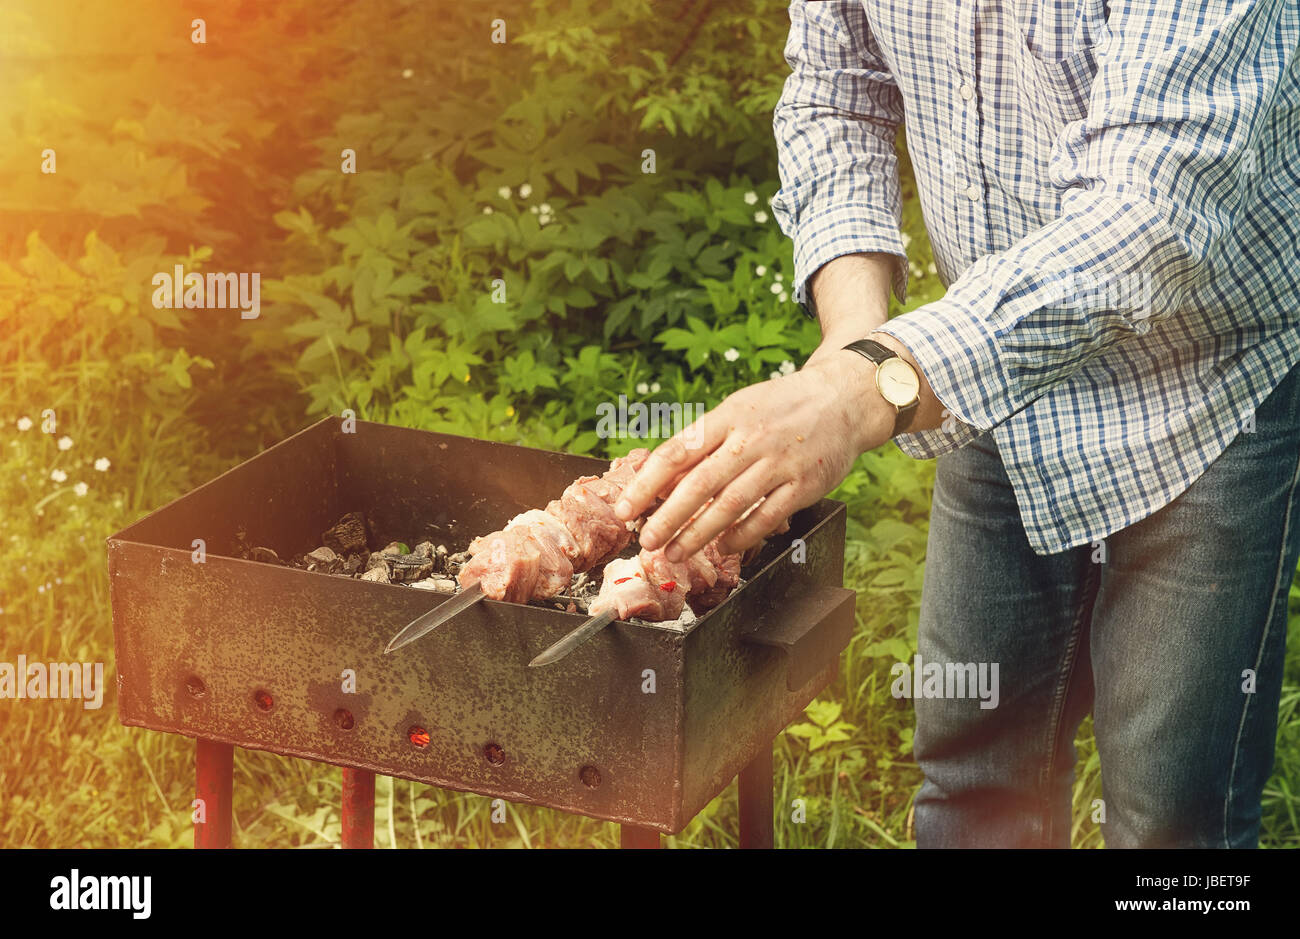 Delicious, juicy barbecue, roasted on a spit over an open fire. The hand holding the skewers.A horizontal frame. - Stock Image